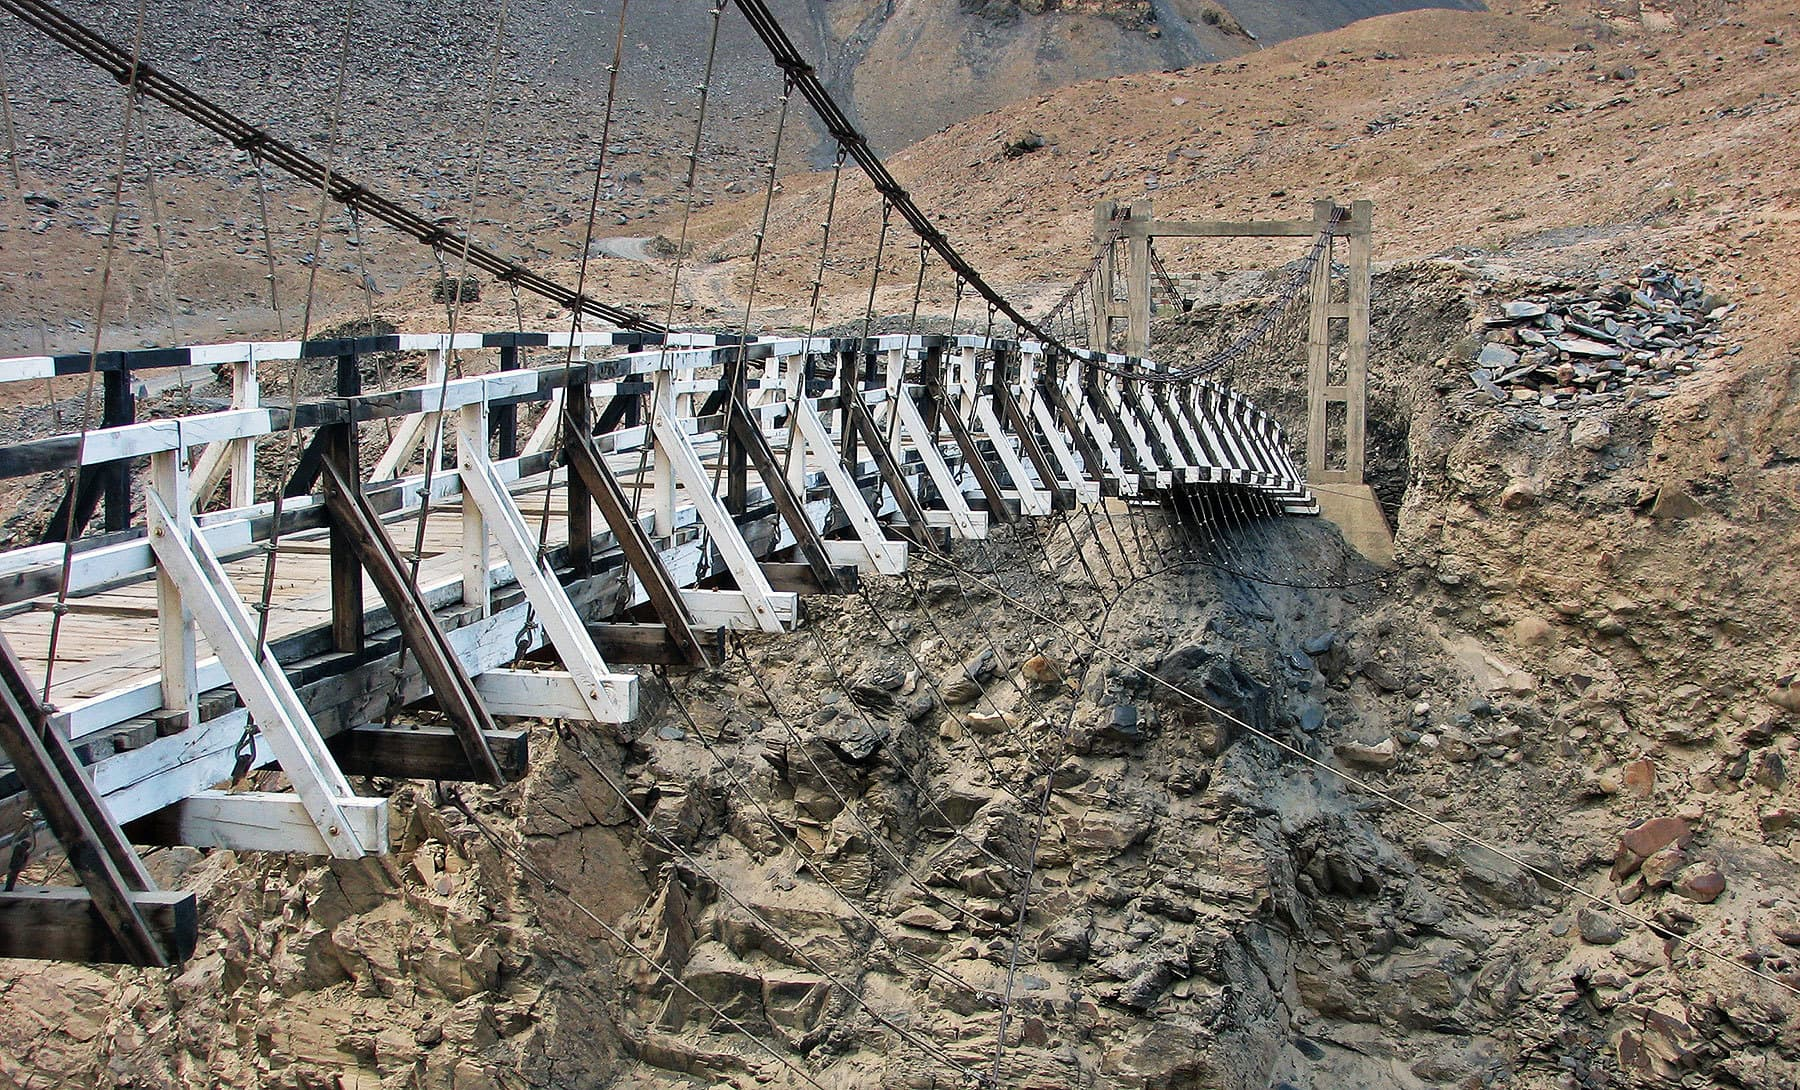 There are quite a few hanging bridges on the Shimshal-Passu jeep road.